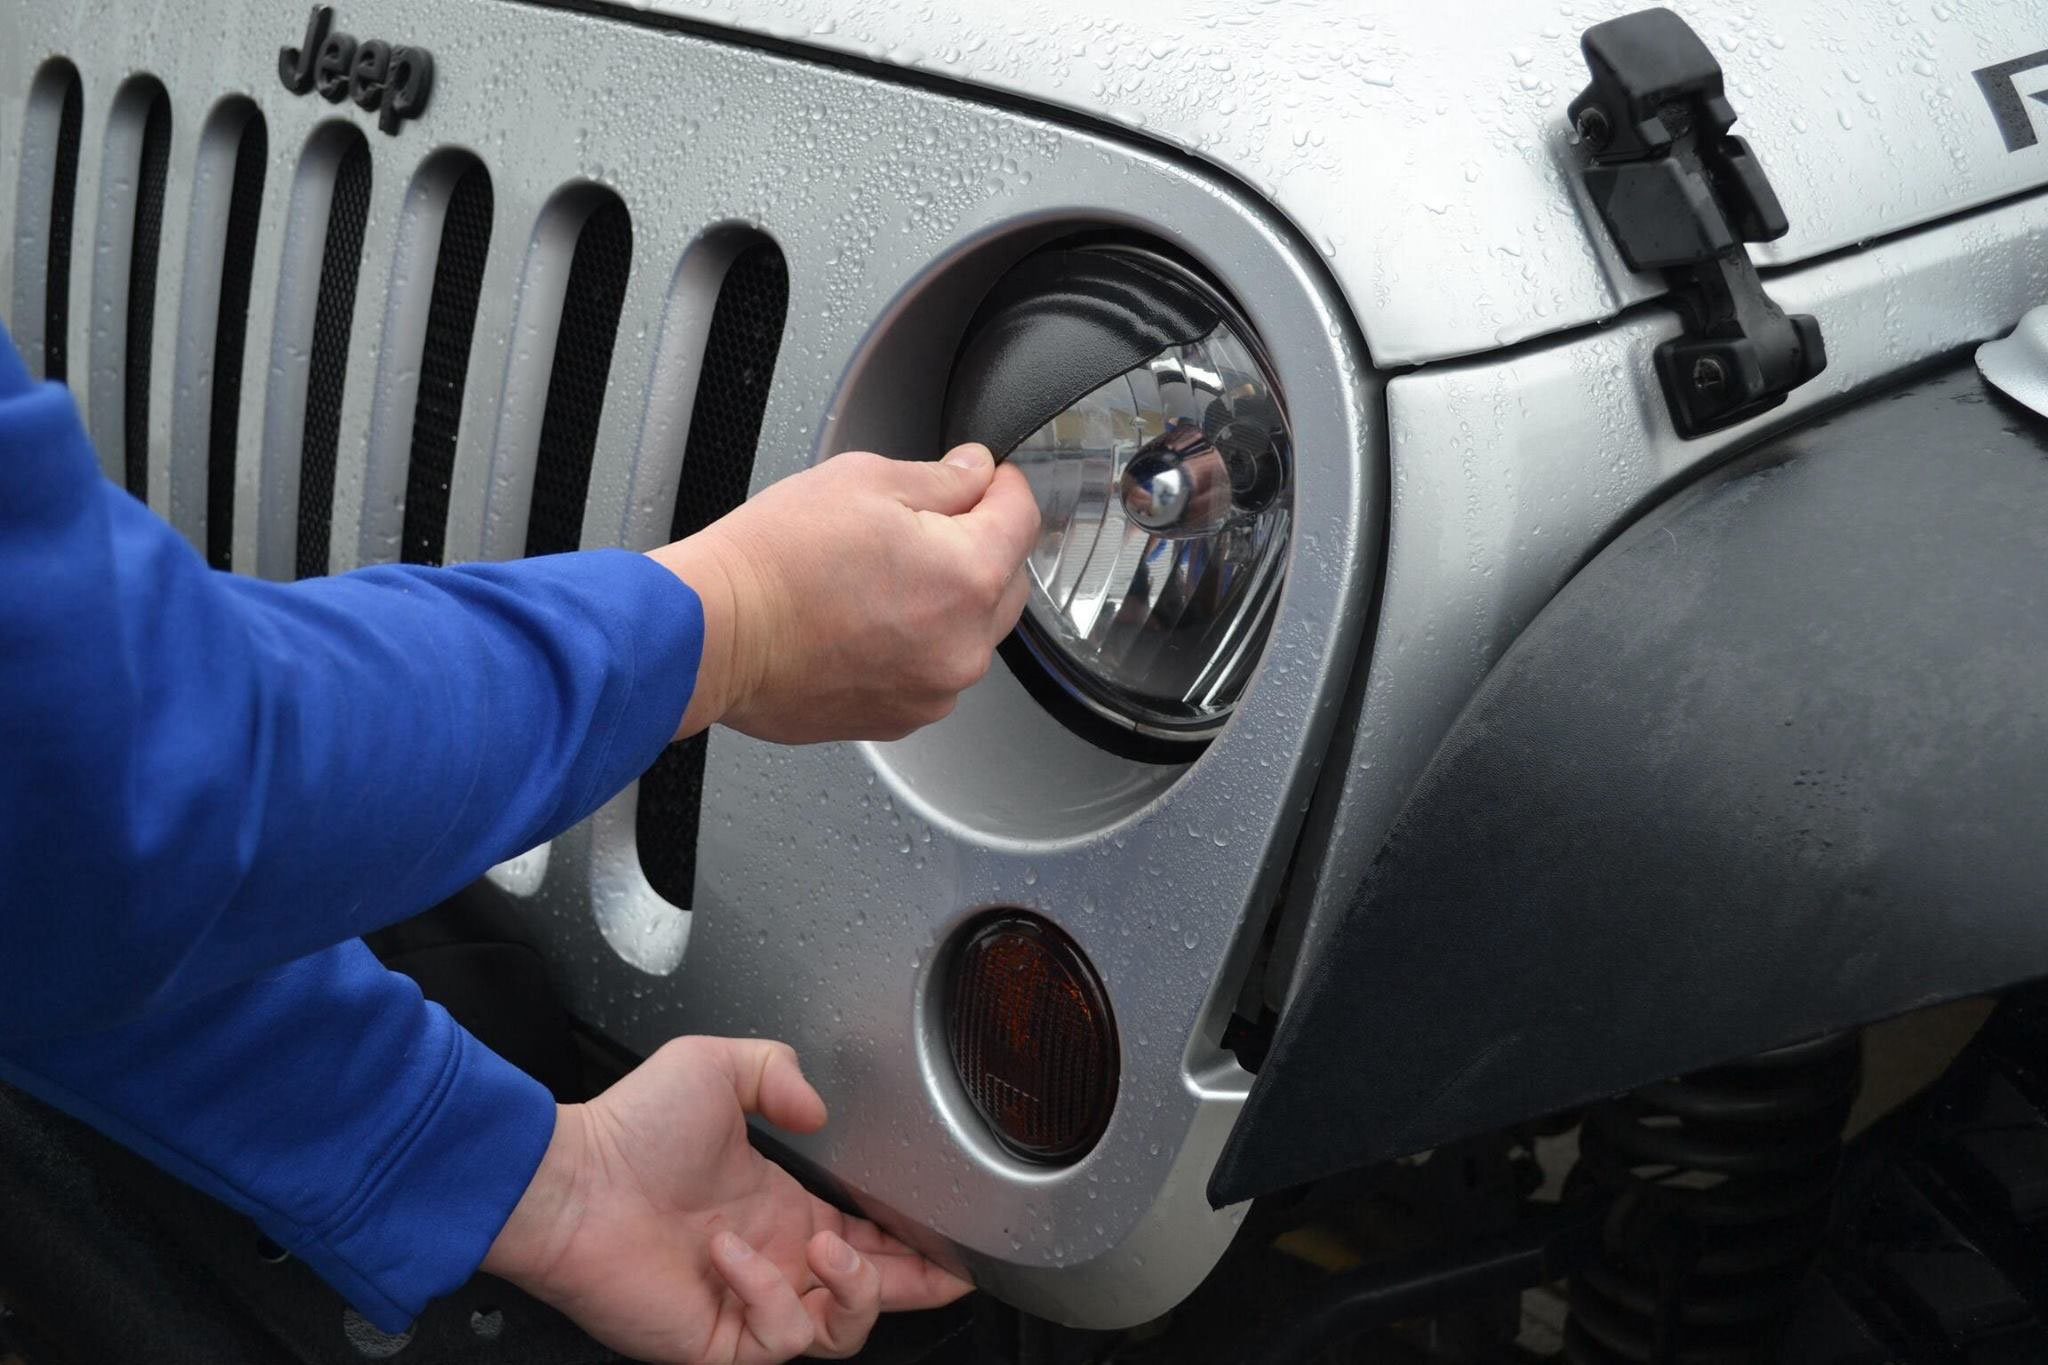 How to Install Jeep Angry Eyes - Angry Eyes Installation - Instructions for Jeep Angry Eyes